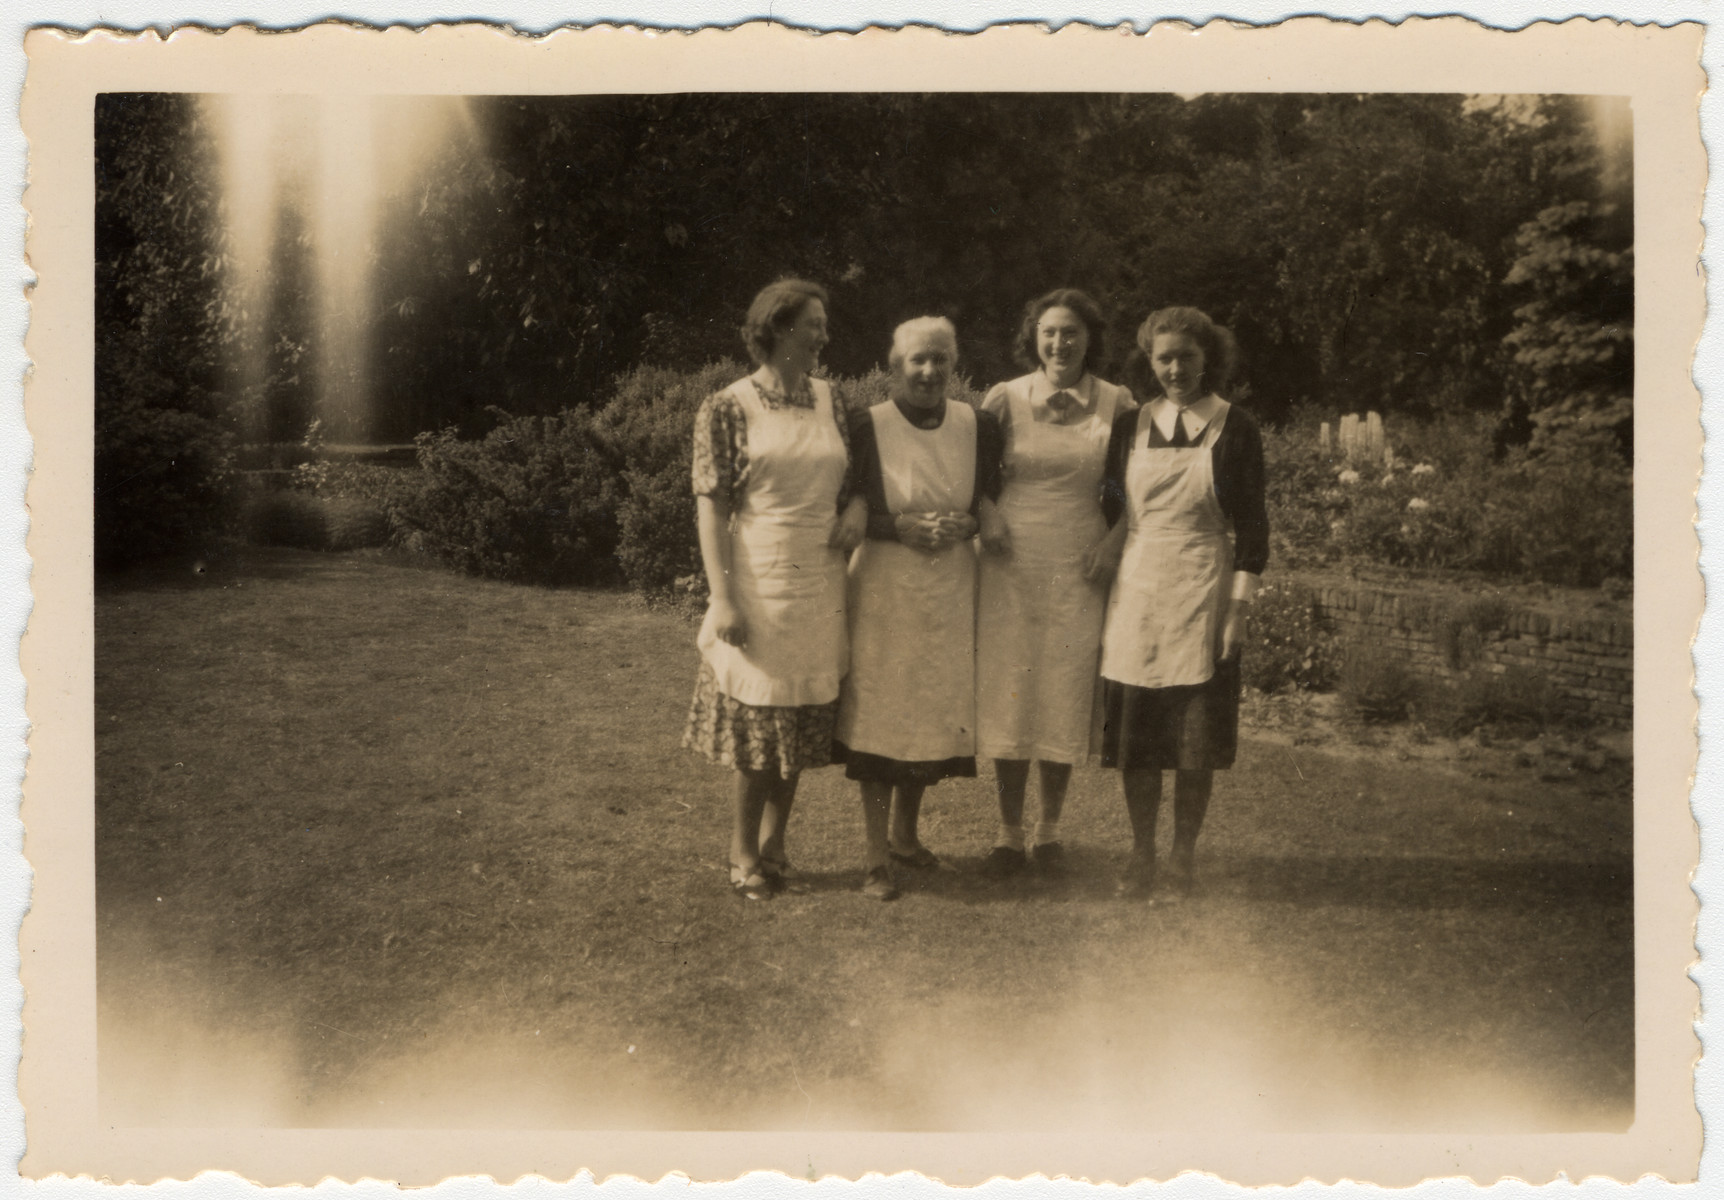 Group portrait of the van Dam family prior to their going into hiding.    Pictured are Hettie, Clara, Minnie and Edith van Dam.